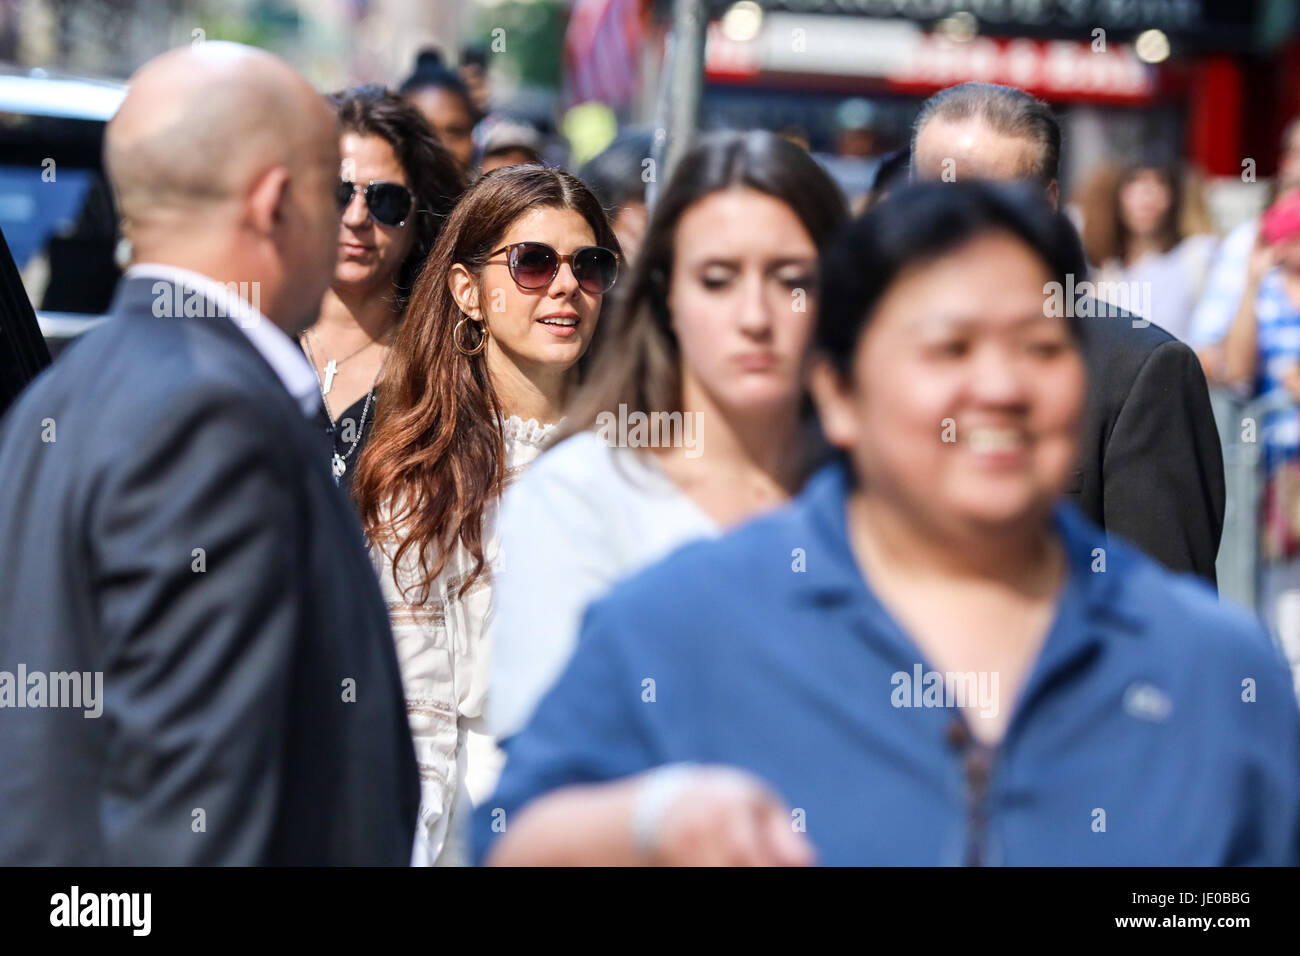 New York, USA. 22nd Jun, 2017. The actress Marisa Tomei is seen arriving at a television program in New York on - Stock Image